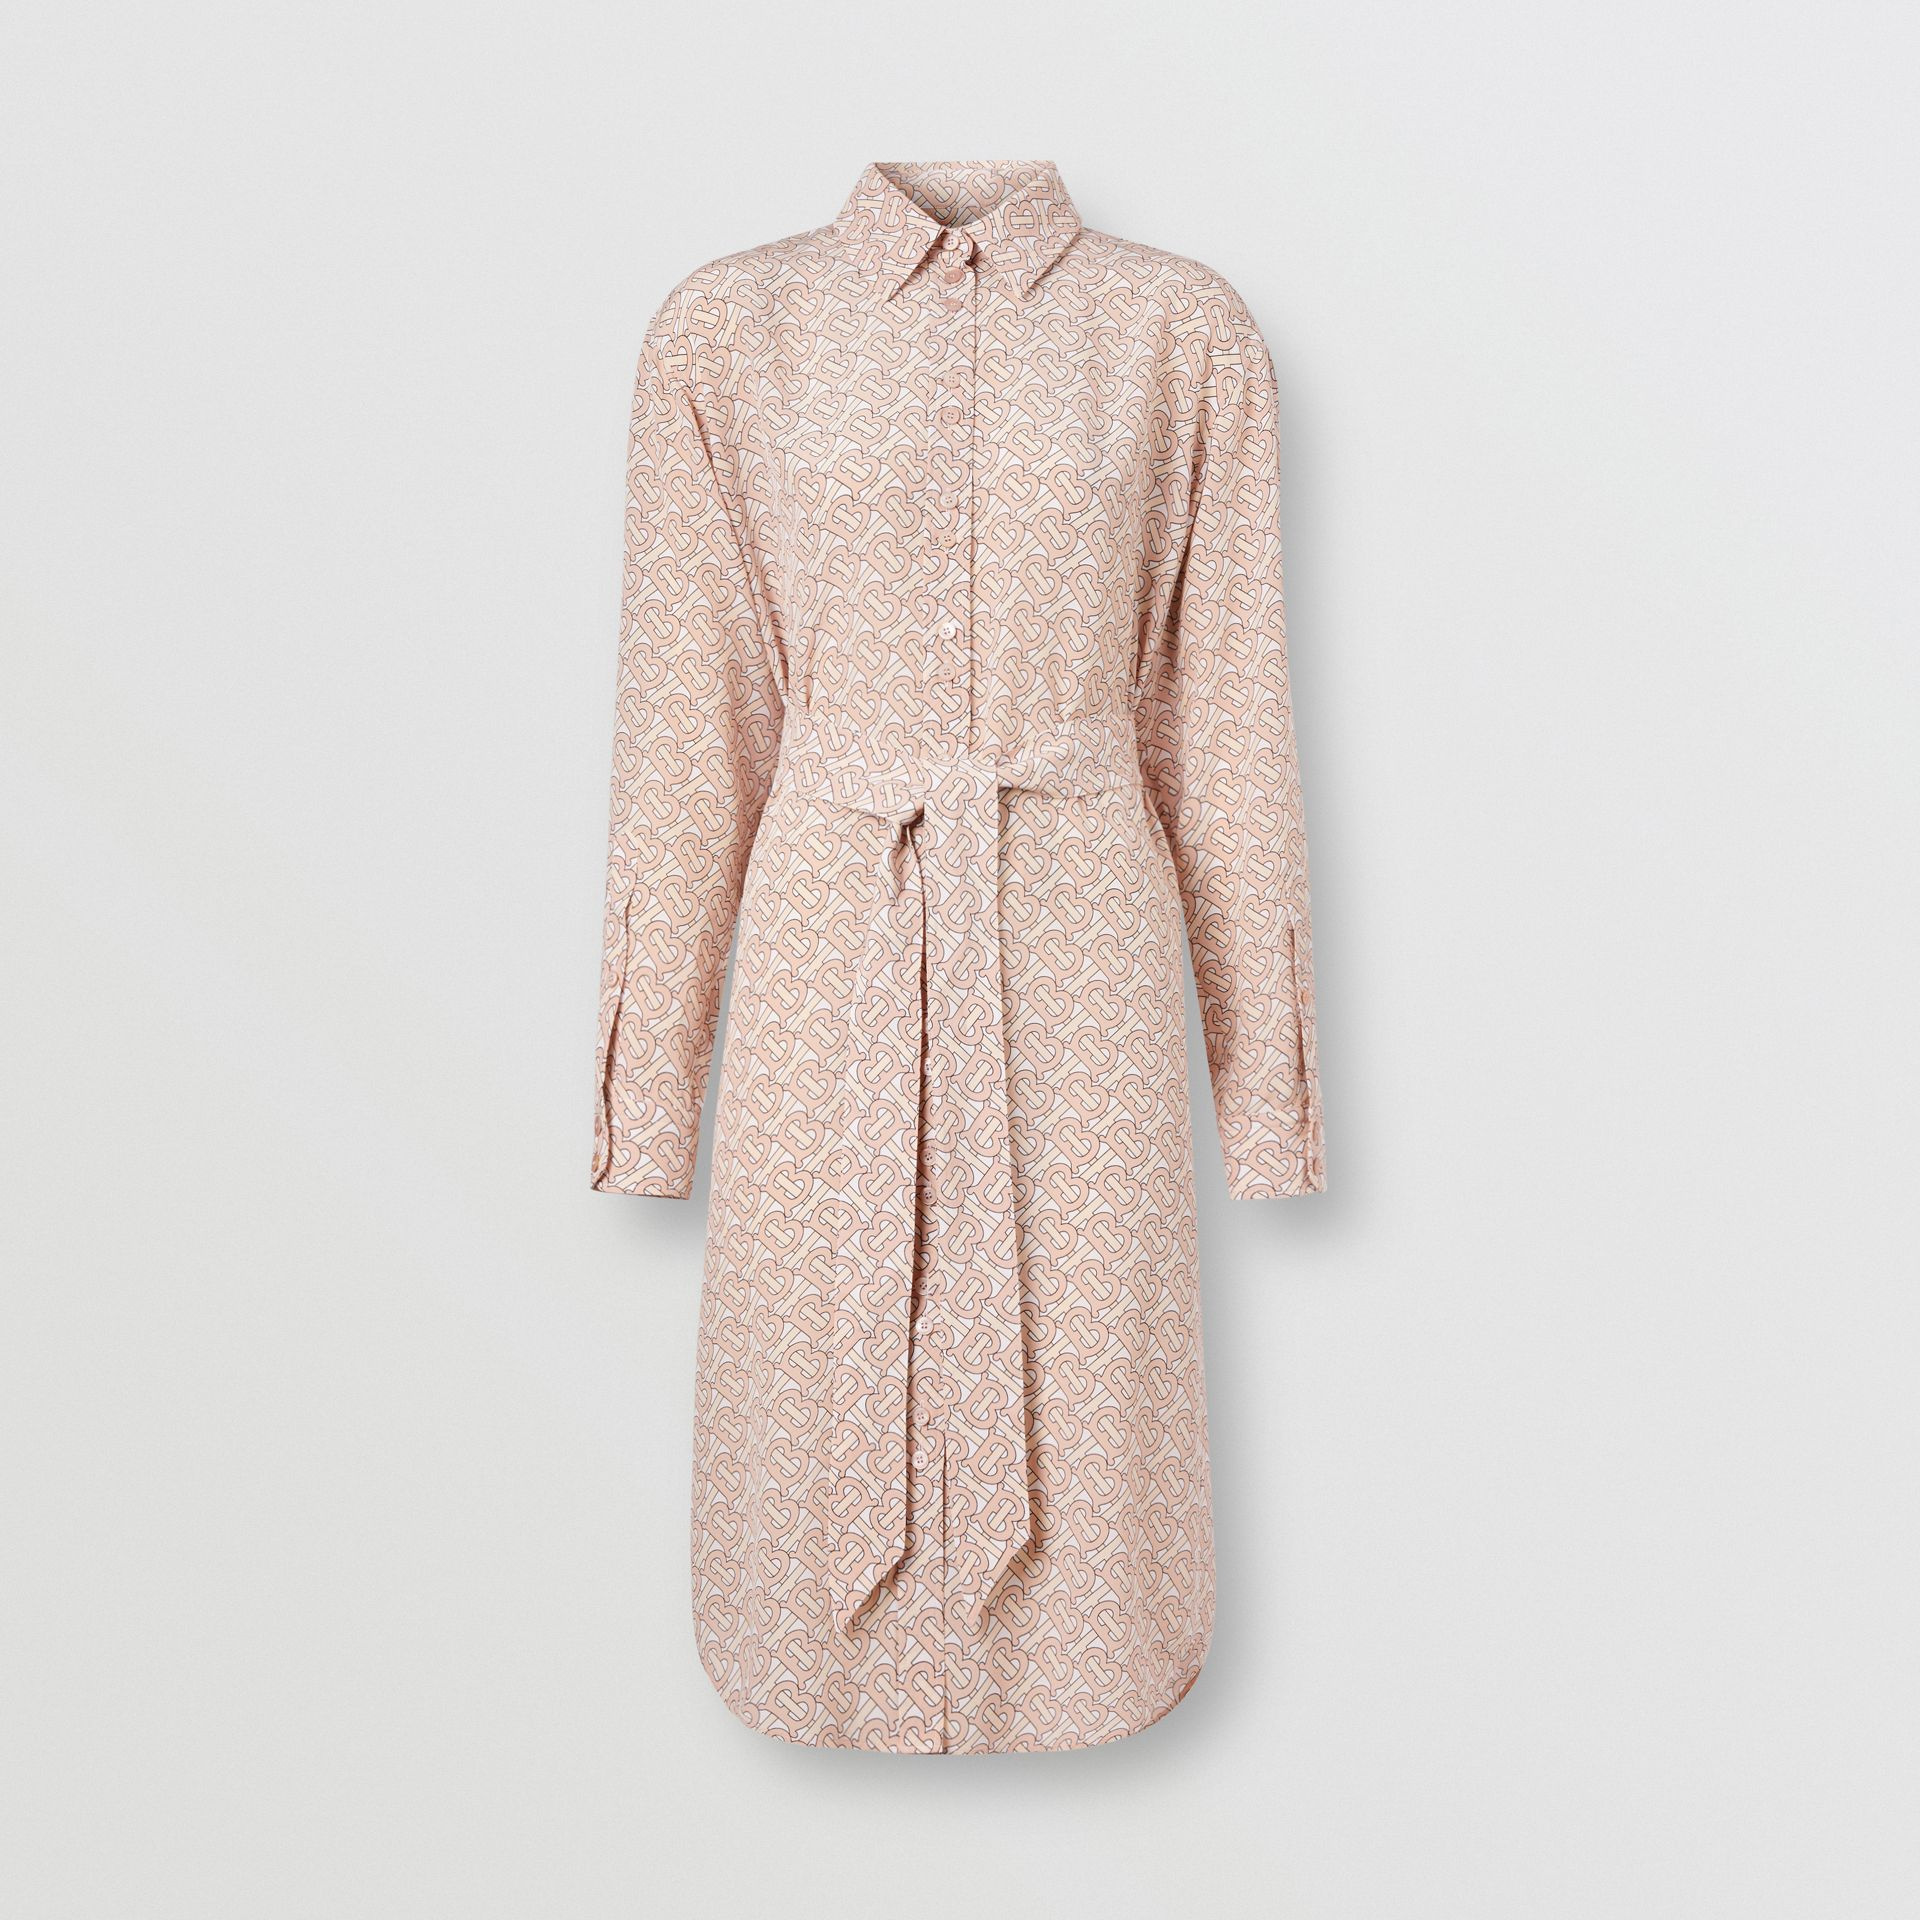 Monogram Print Silk Crepe De Chine Shirt Dress in Pale Copper Pink - Women | Burberry - gallery image 3